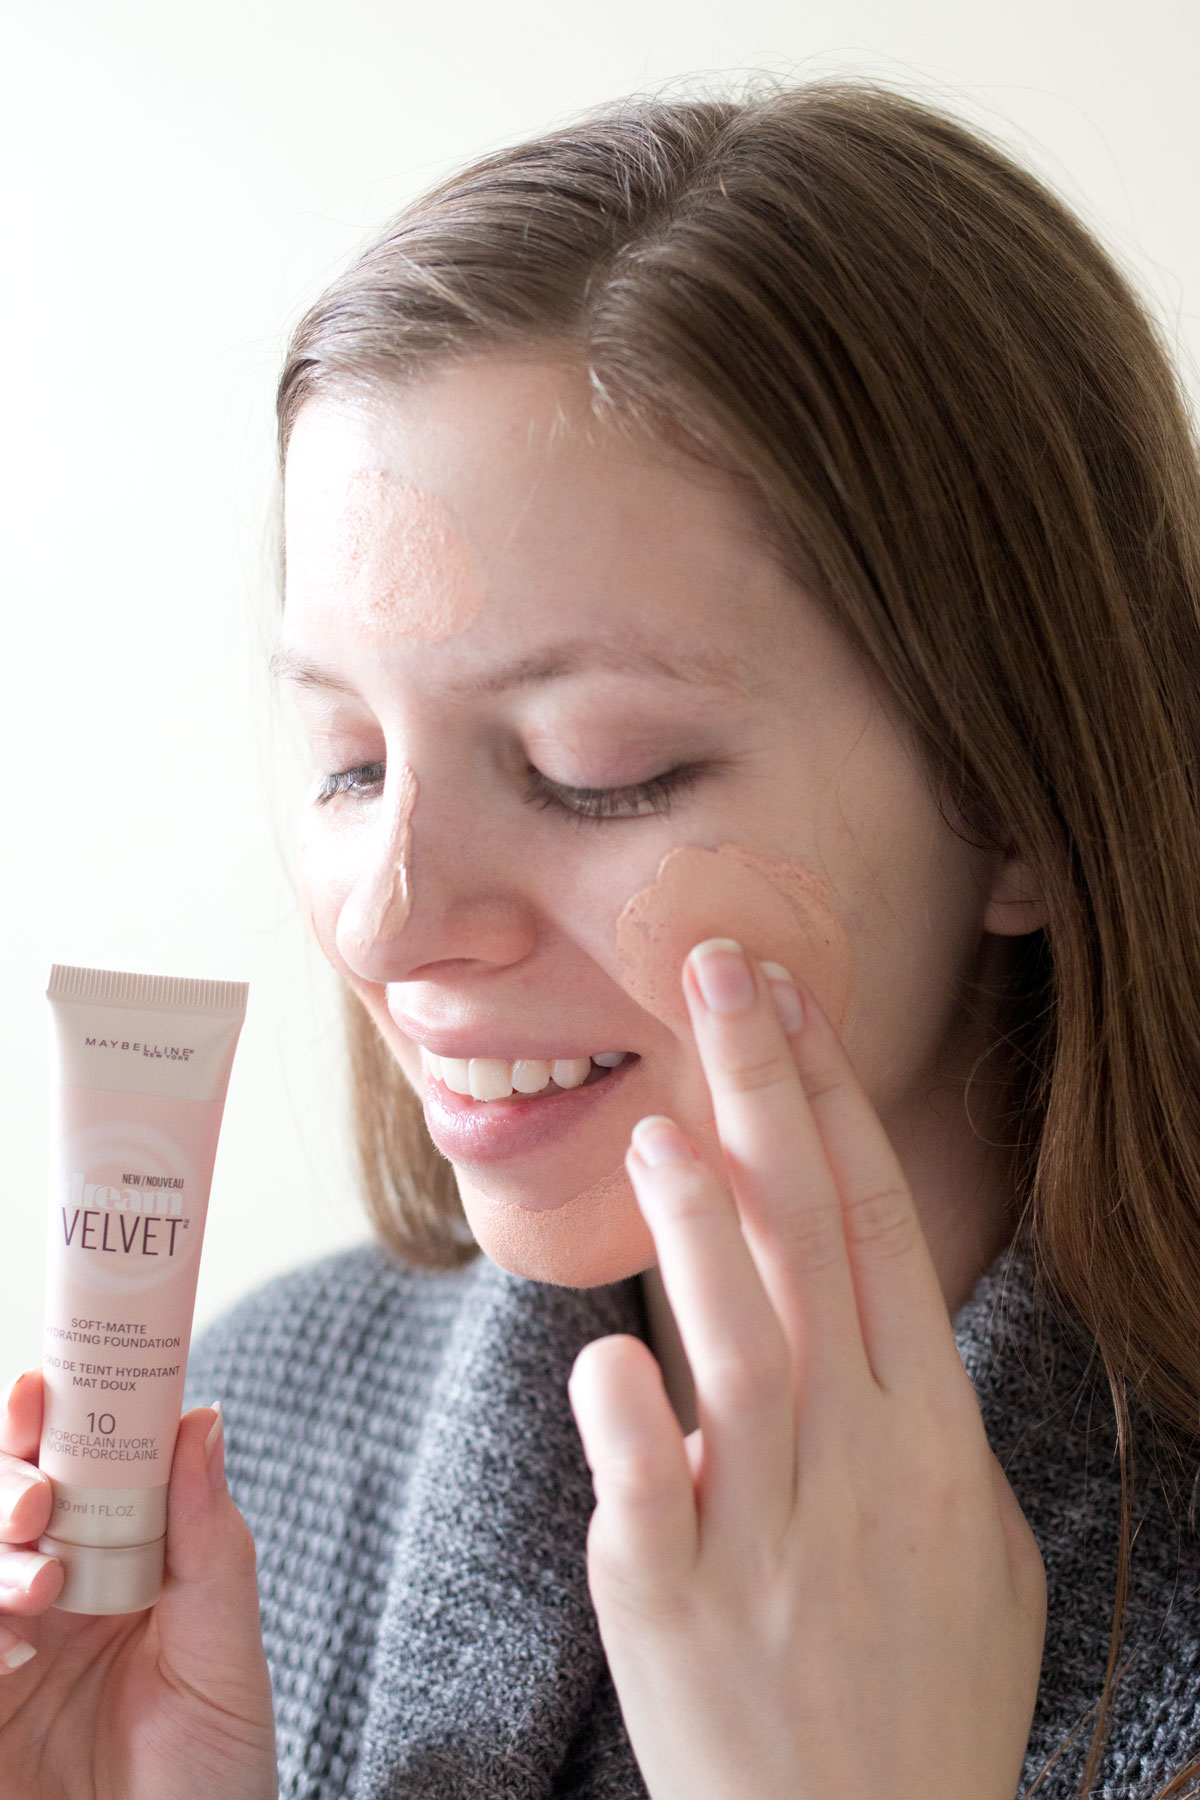 Maybelline Dream Velvet Foundation Review // Hello Rigby Seattle Fashion & Style Blog